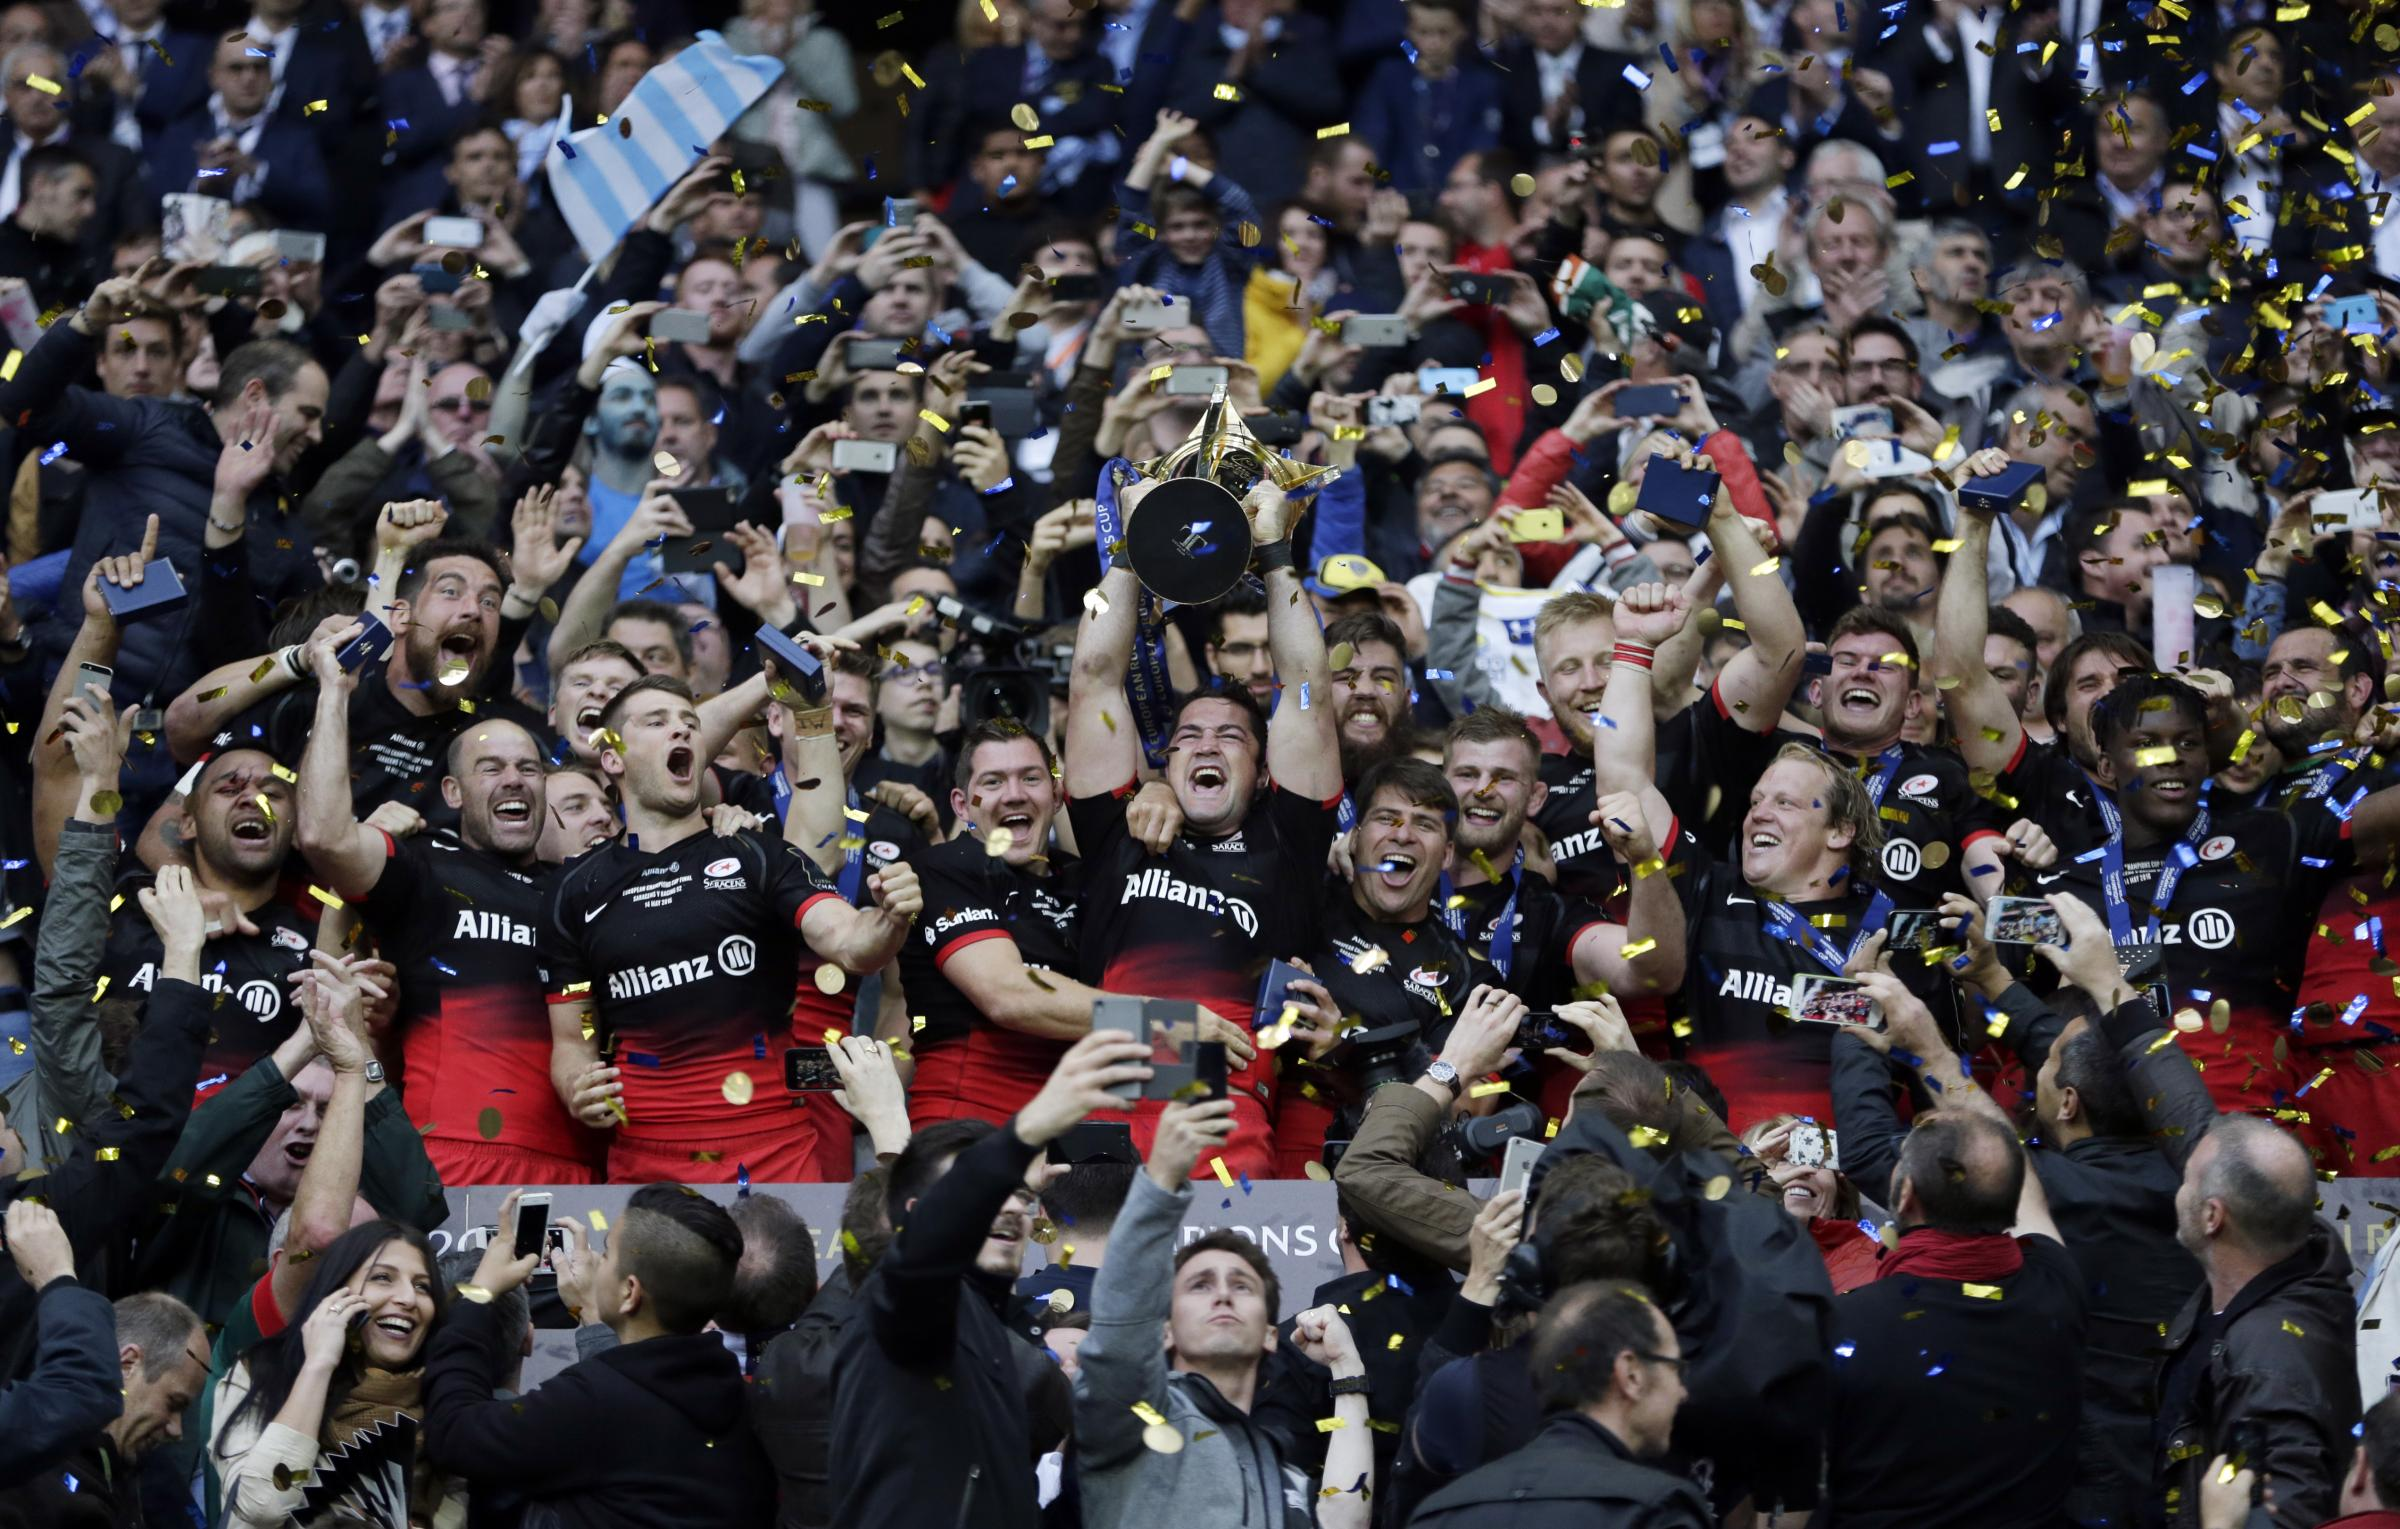 Mission accomplished: Saracens are the new champions of Europe. Picture: Action Images